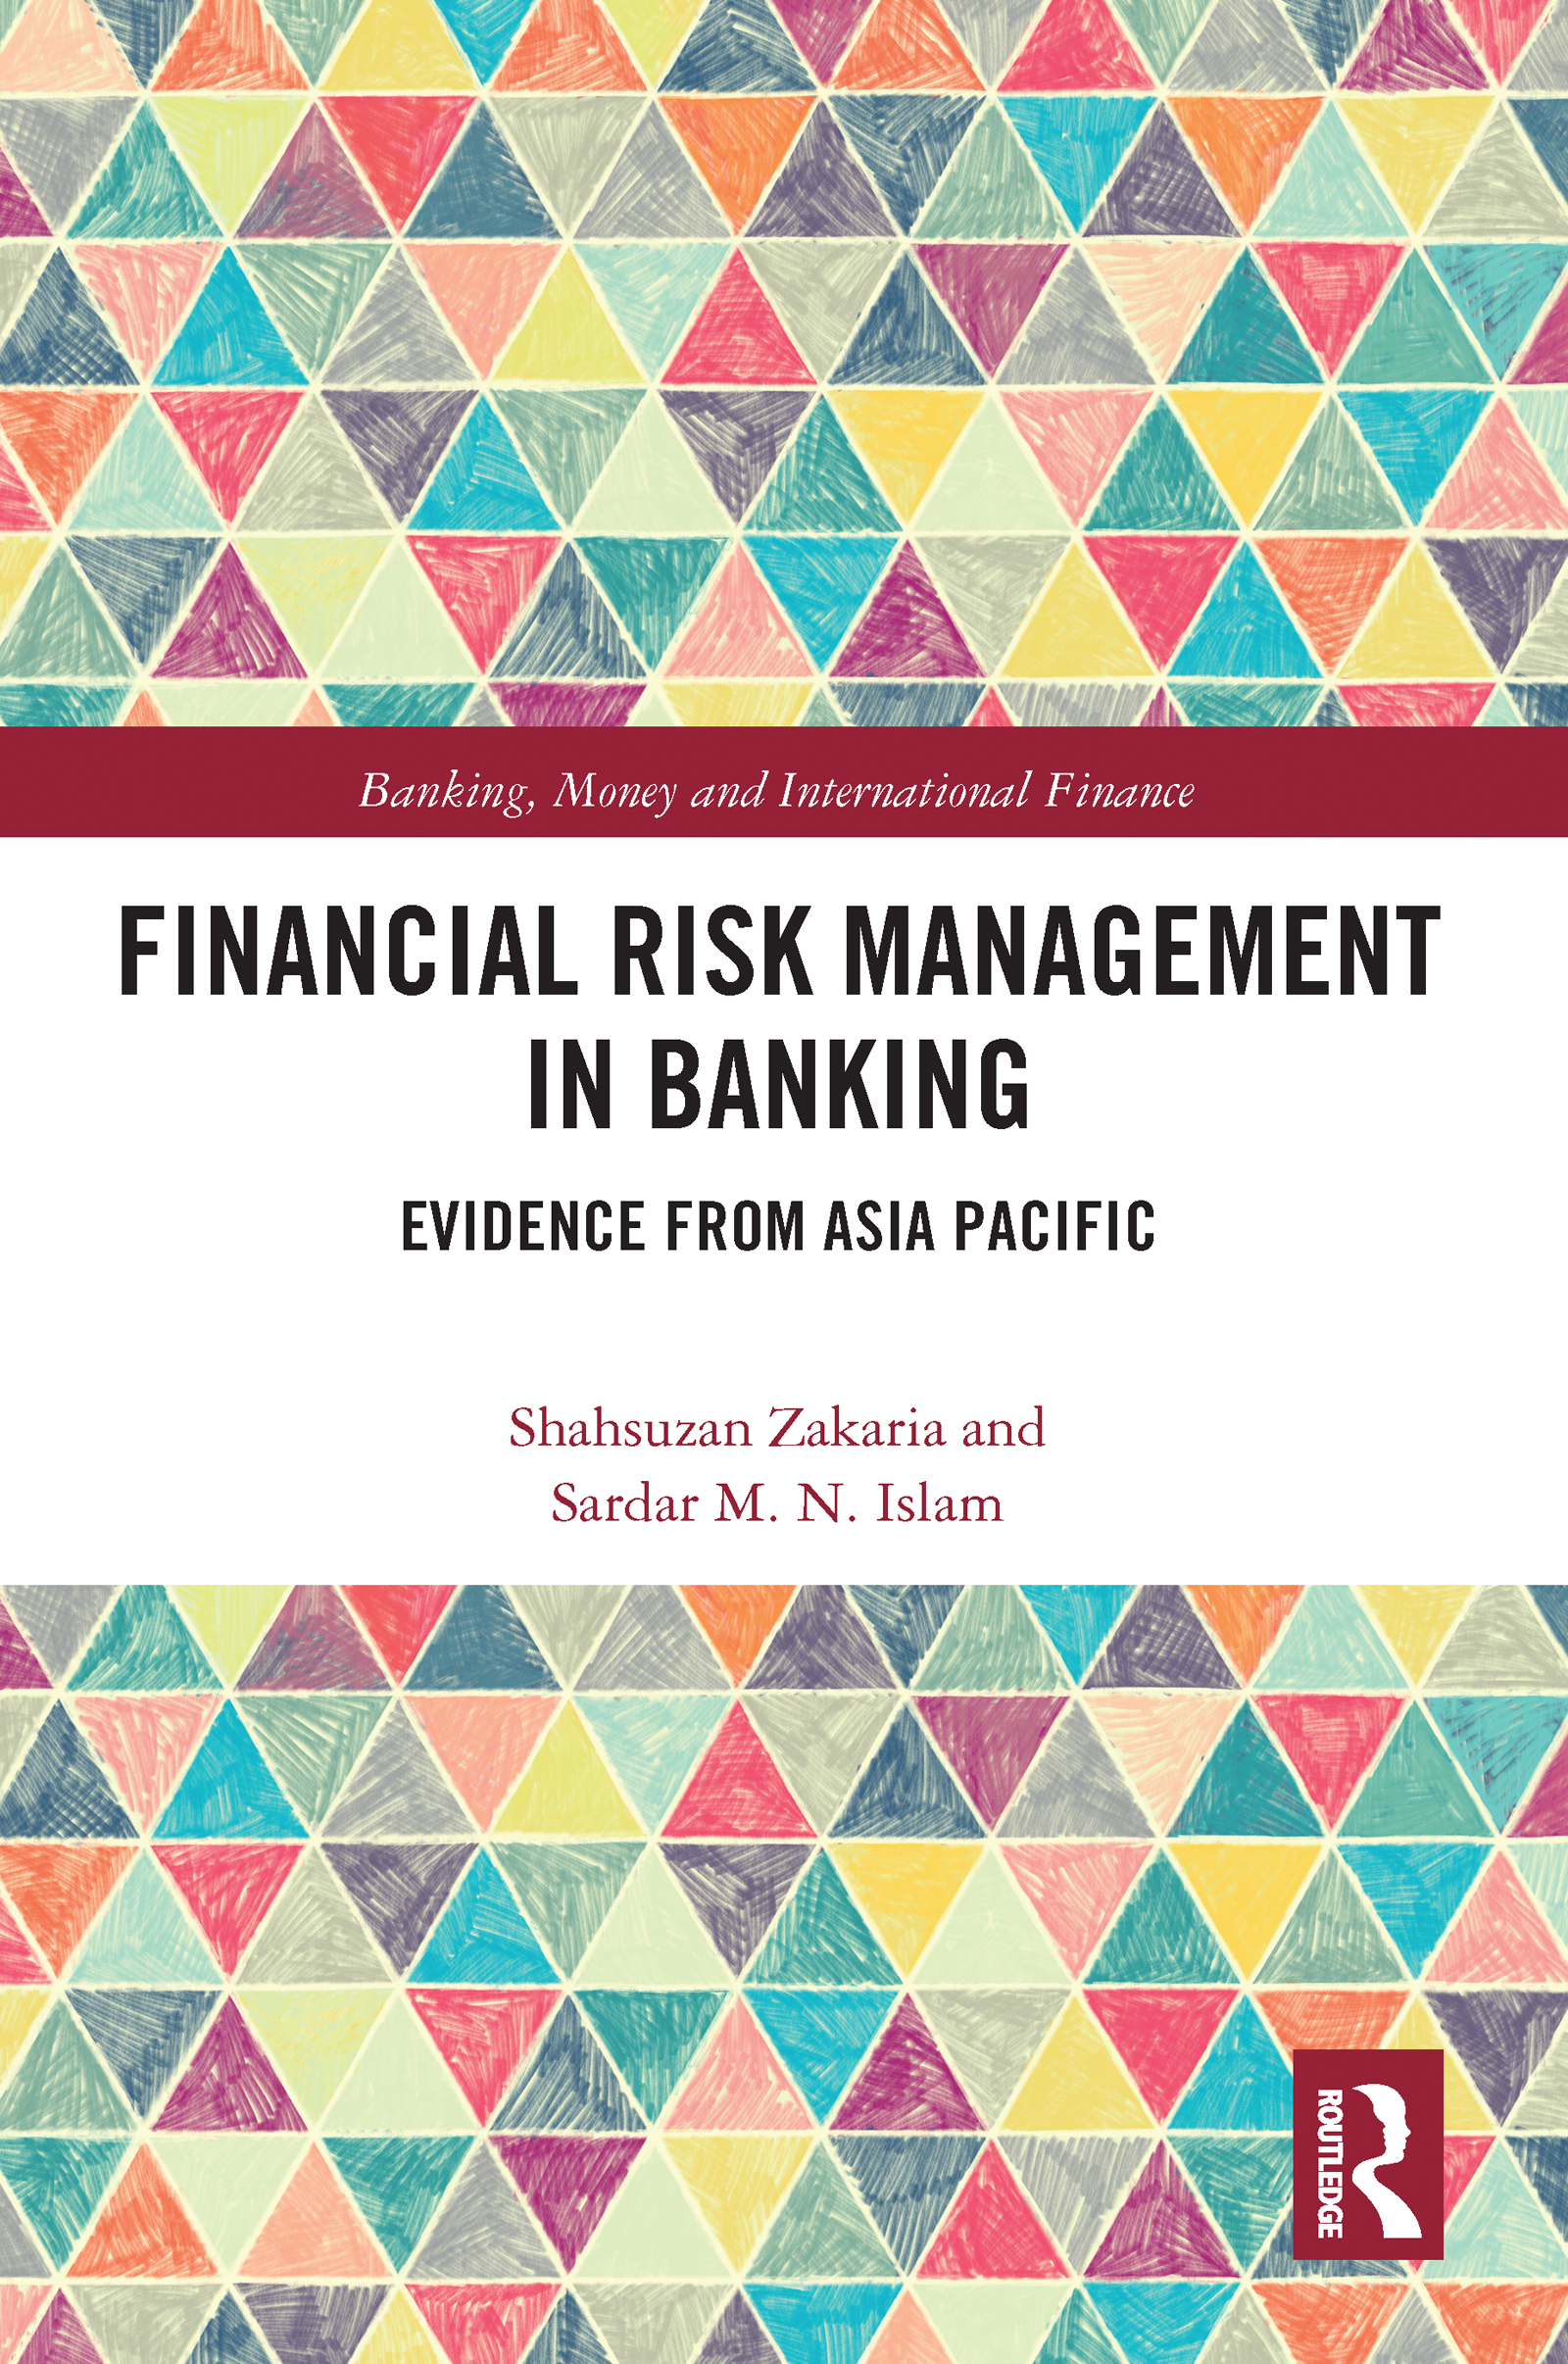 Financial Risk Management in Banking